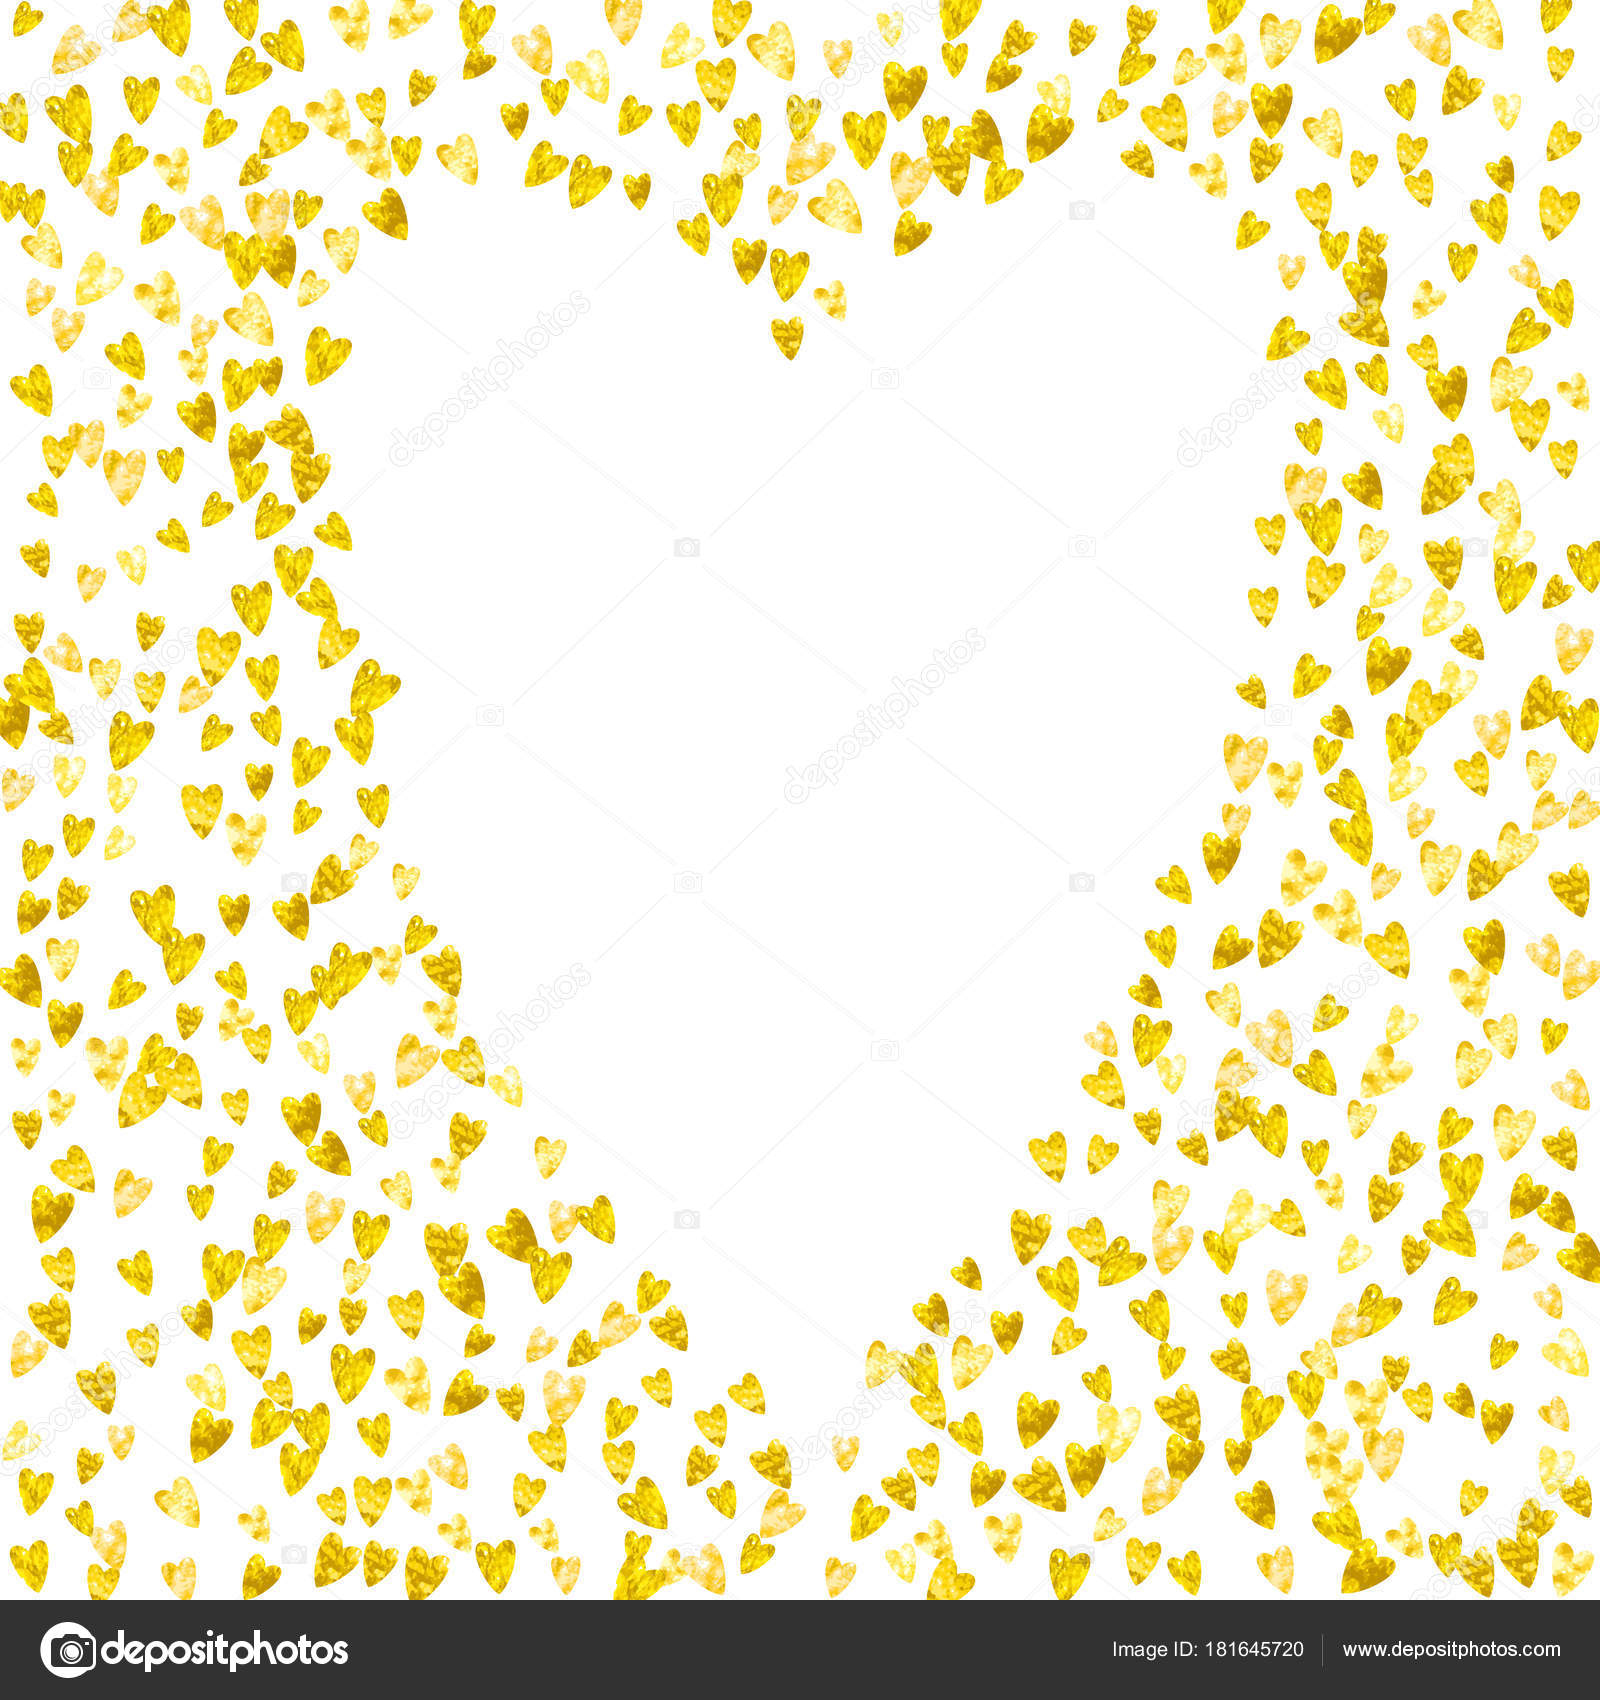 Heart Border For Valentines Day With Gold Glitter February 14th Vector Confetti Template Grunge Hand Drawn Texture